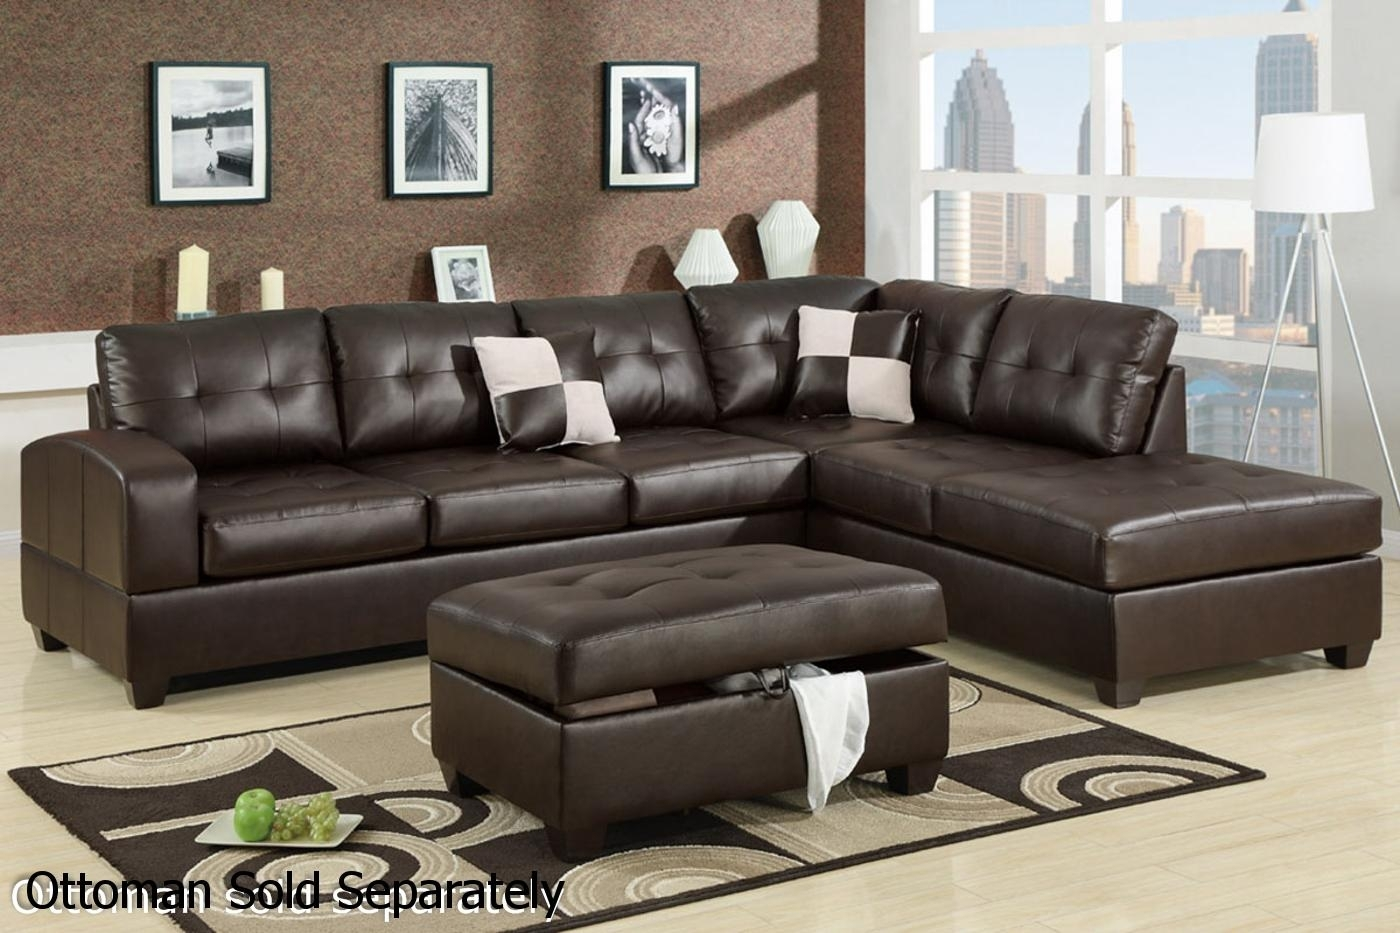 Astounding Sectional Sofas Near Me 77 In Sectional Sofas Big Lots Pertaining To Sectional Sofas At Big Lots (View 10 of 10)